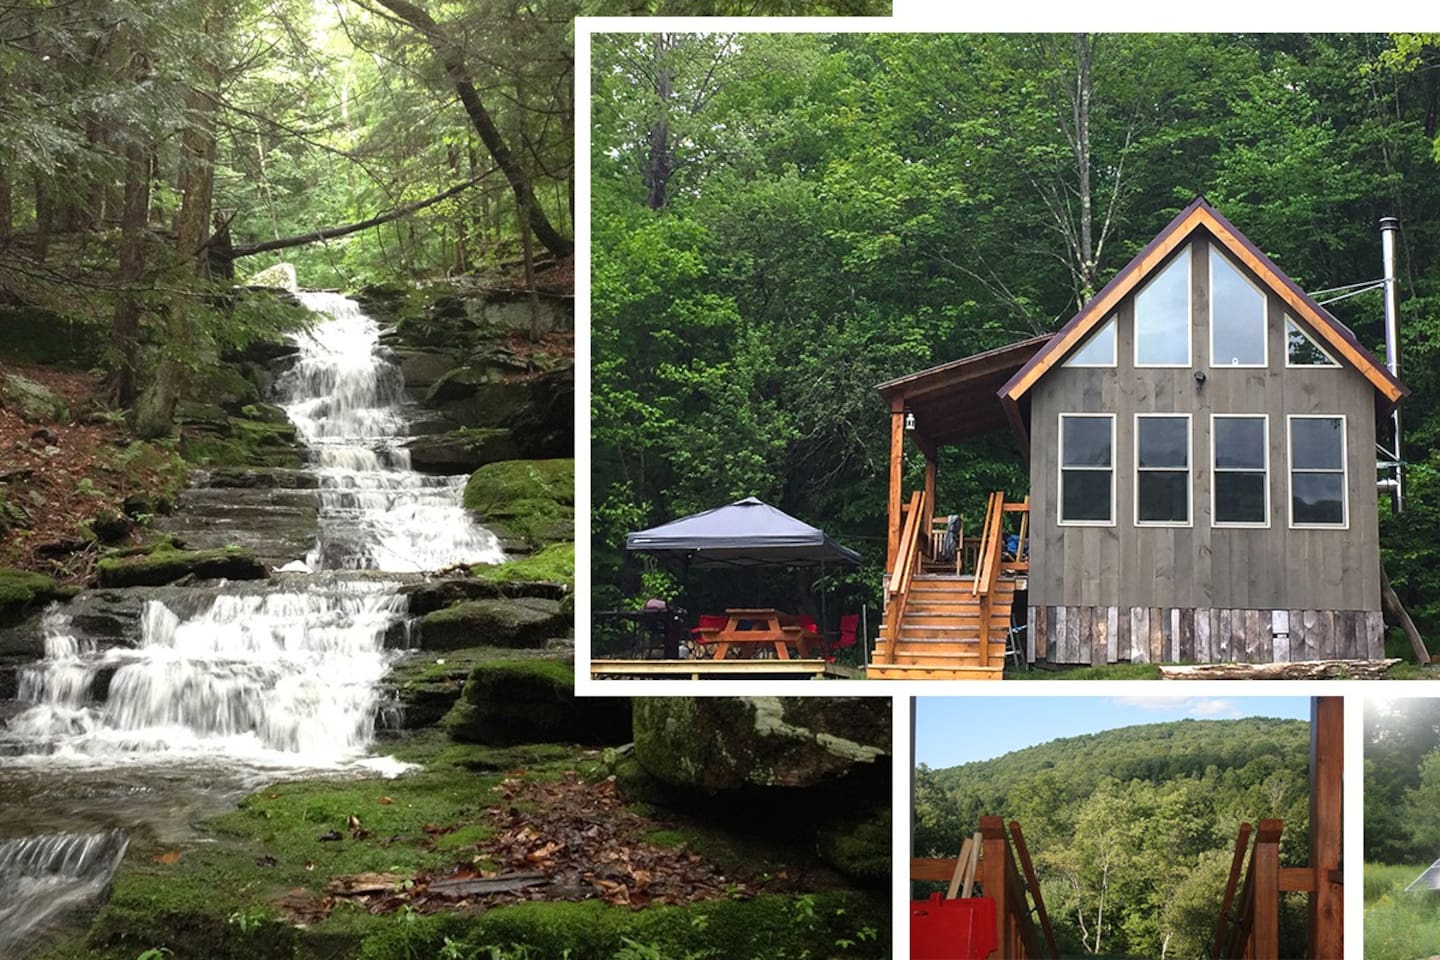 """Welcome to The Falls -- a serene solar-powered """"tiny house"""" getaway on 12 acres in the Upper Delaware River region. Total peace and tranquility but yet so close to Delaware River recreation and quaint country conveniences."""